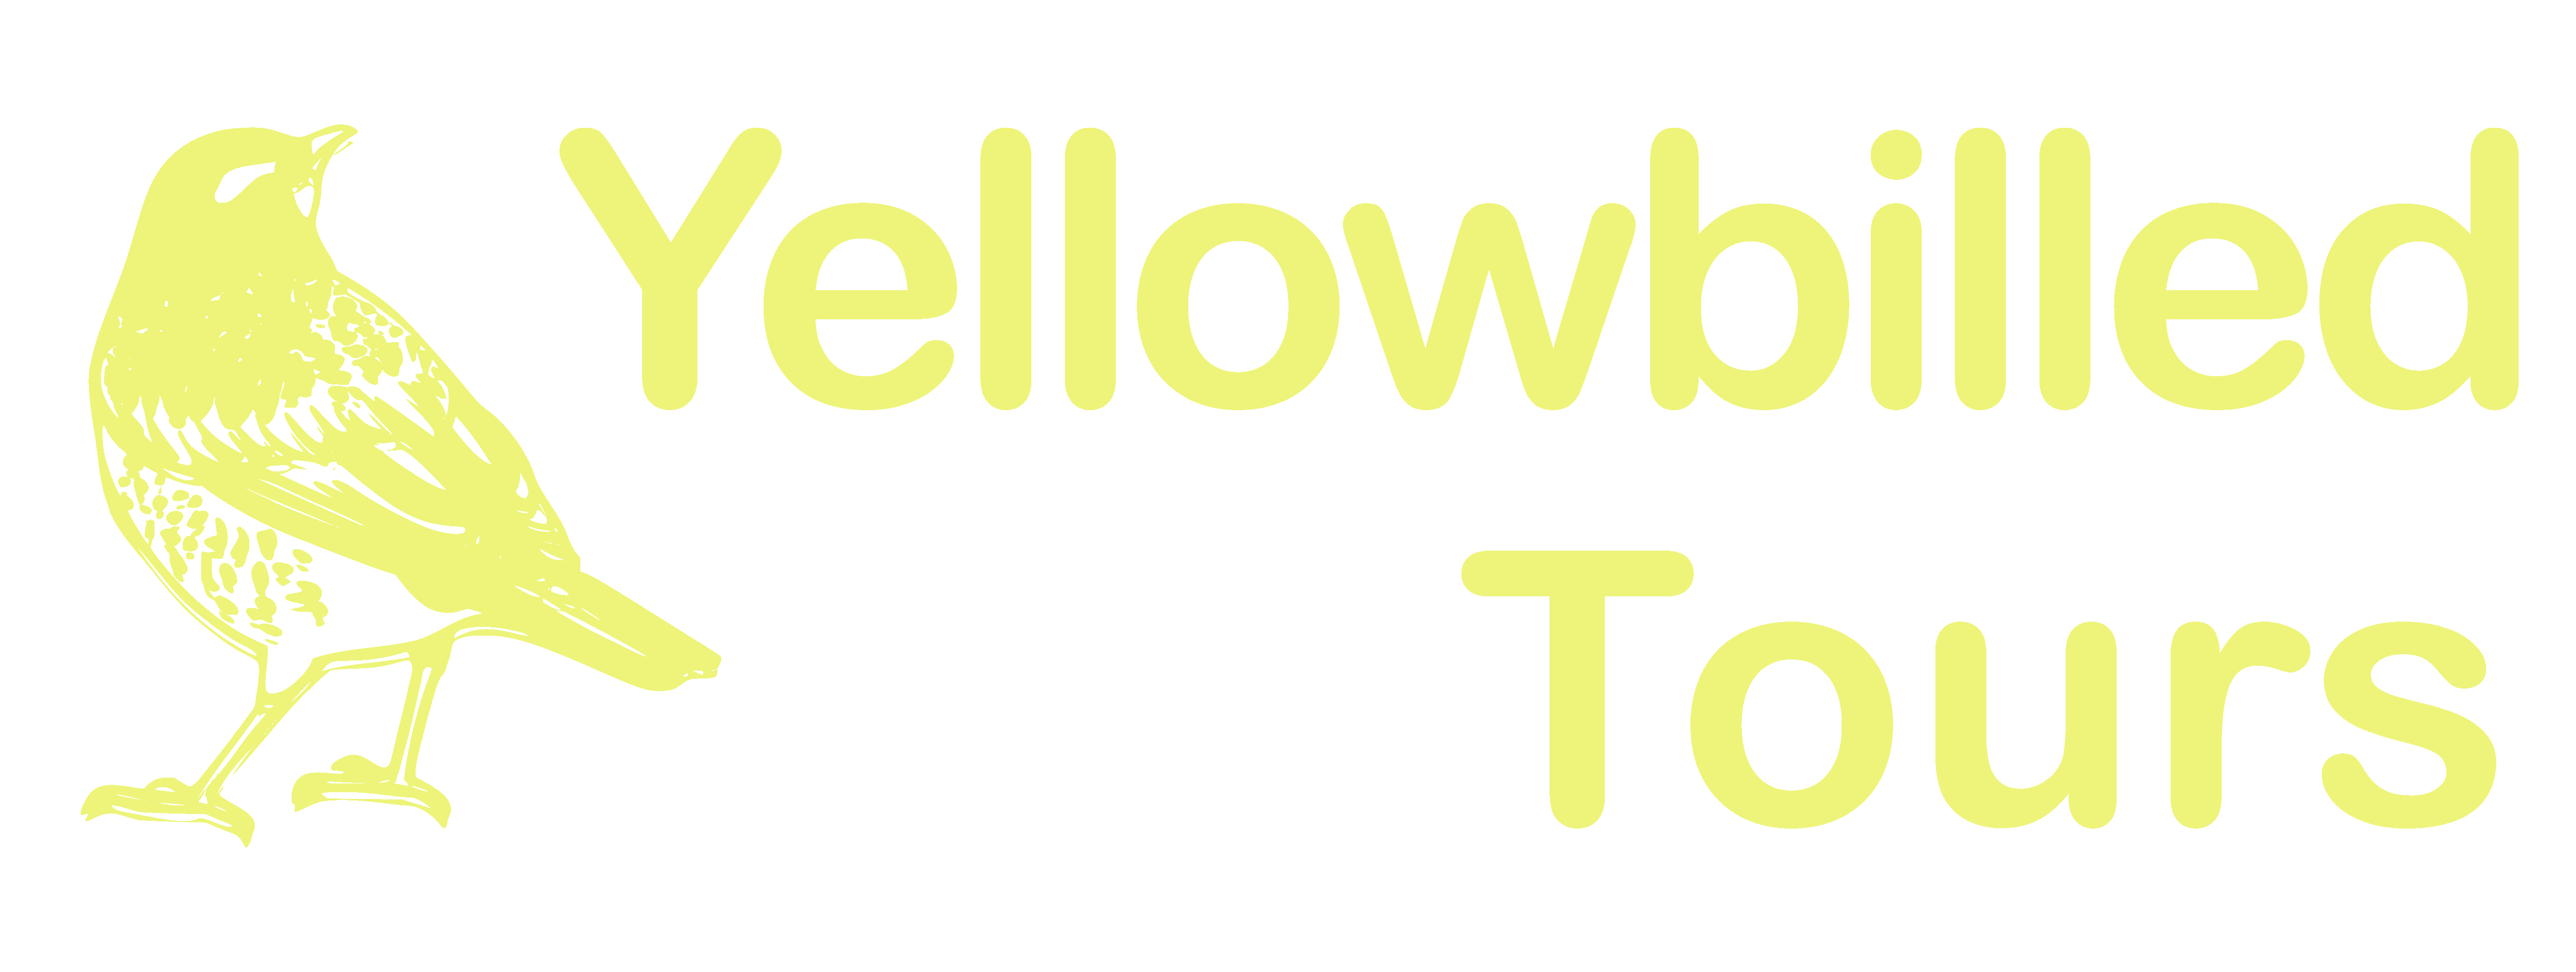 Yellowbilled Tours